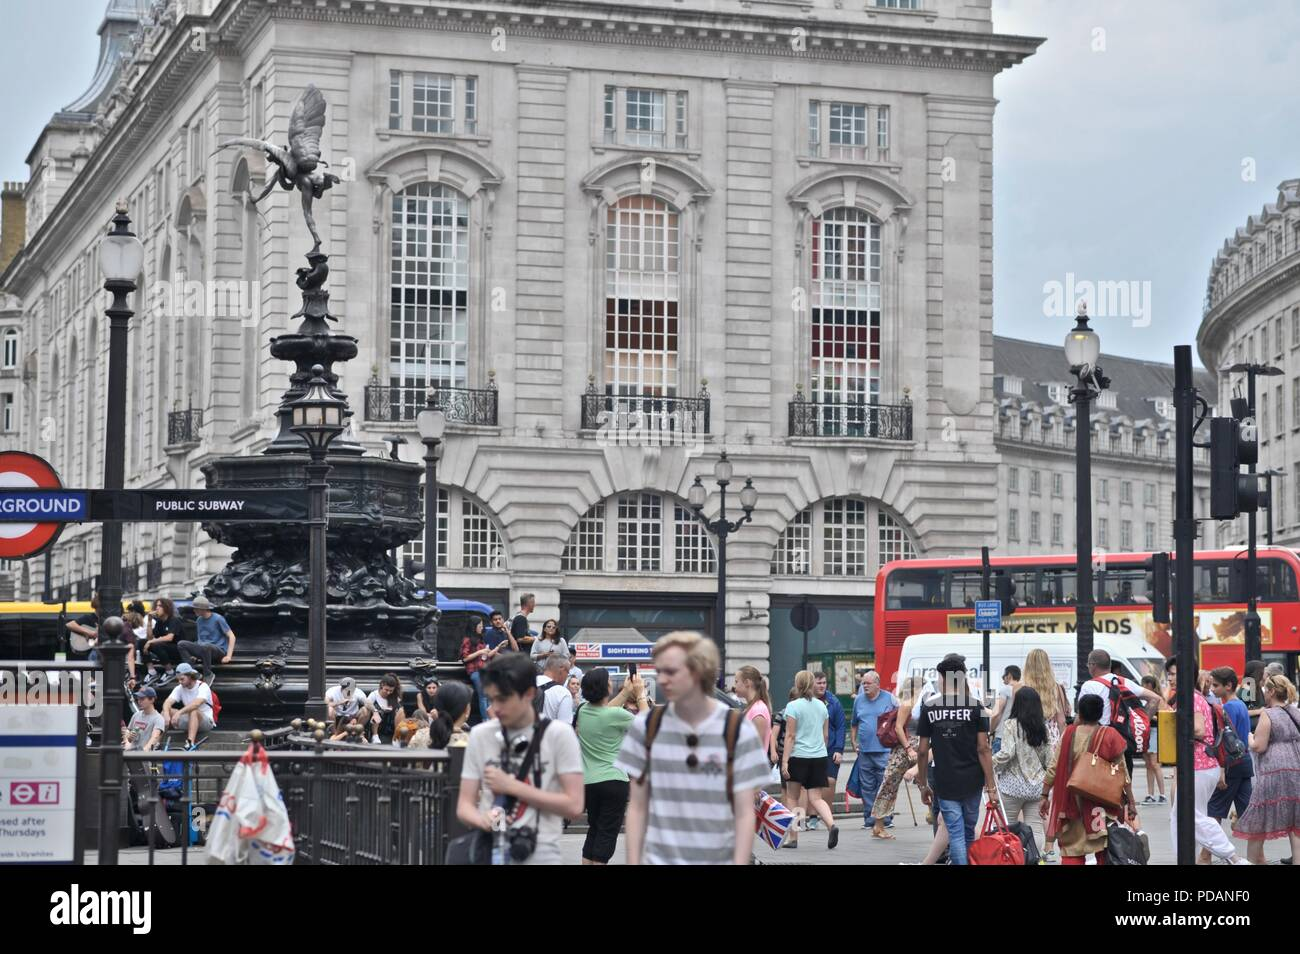 Piccadilly circus, central London - Stock Image